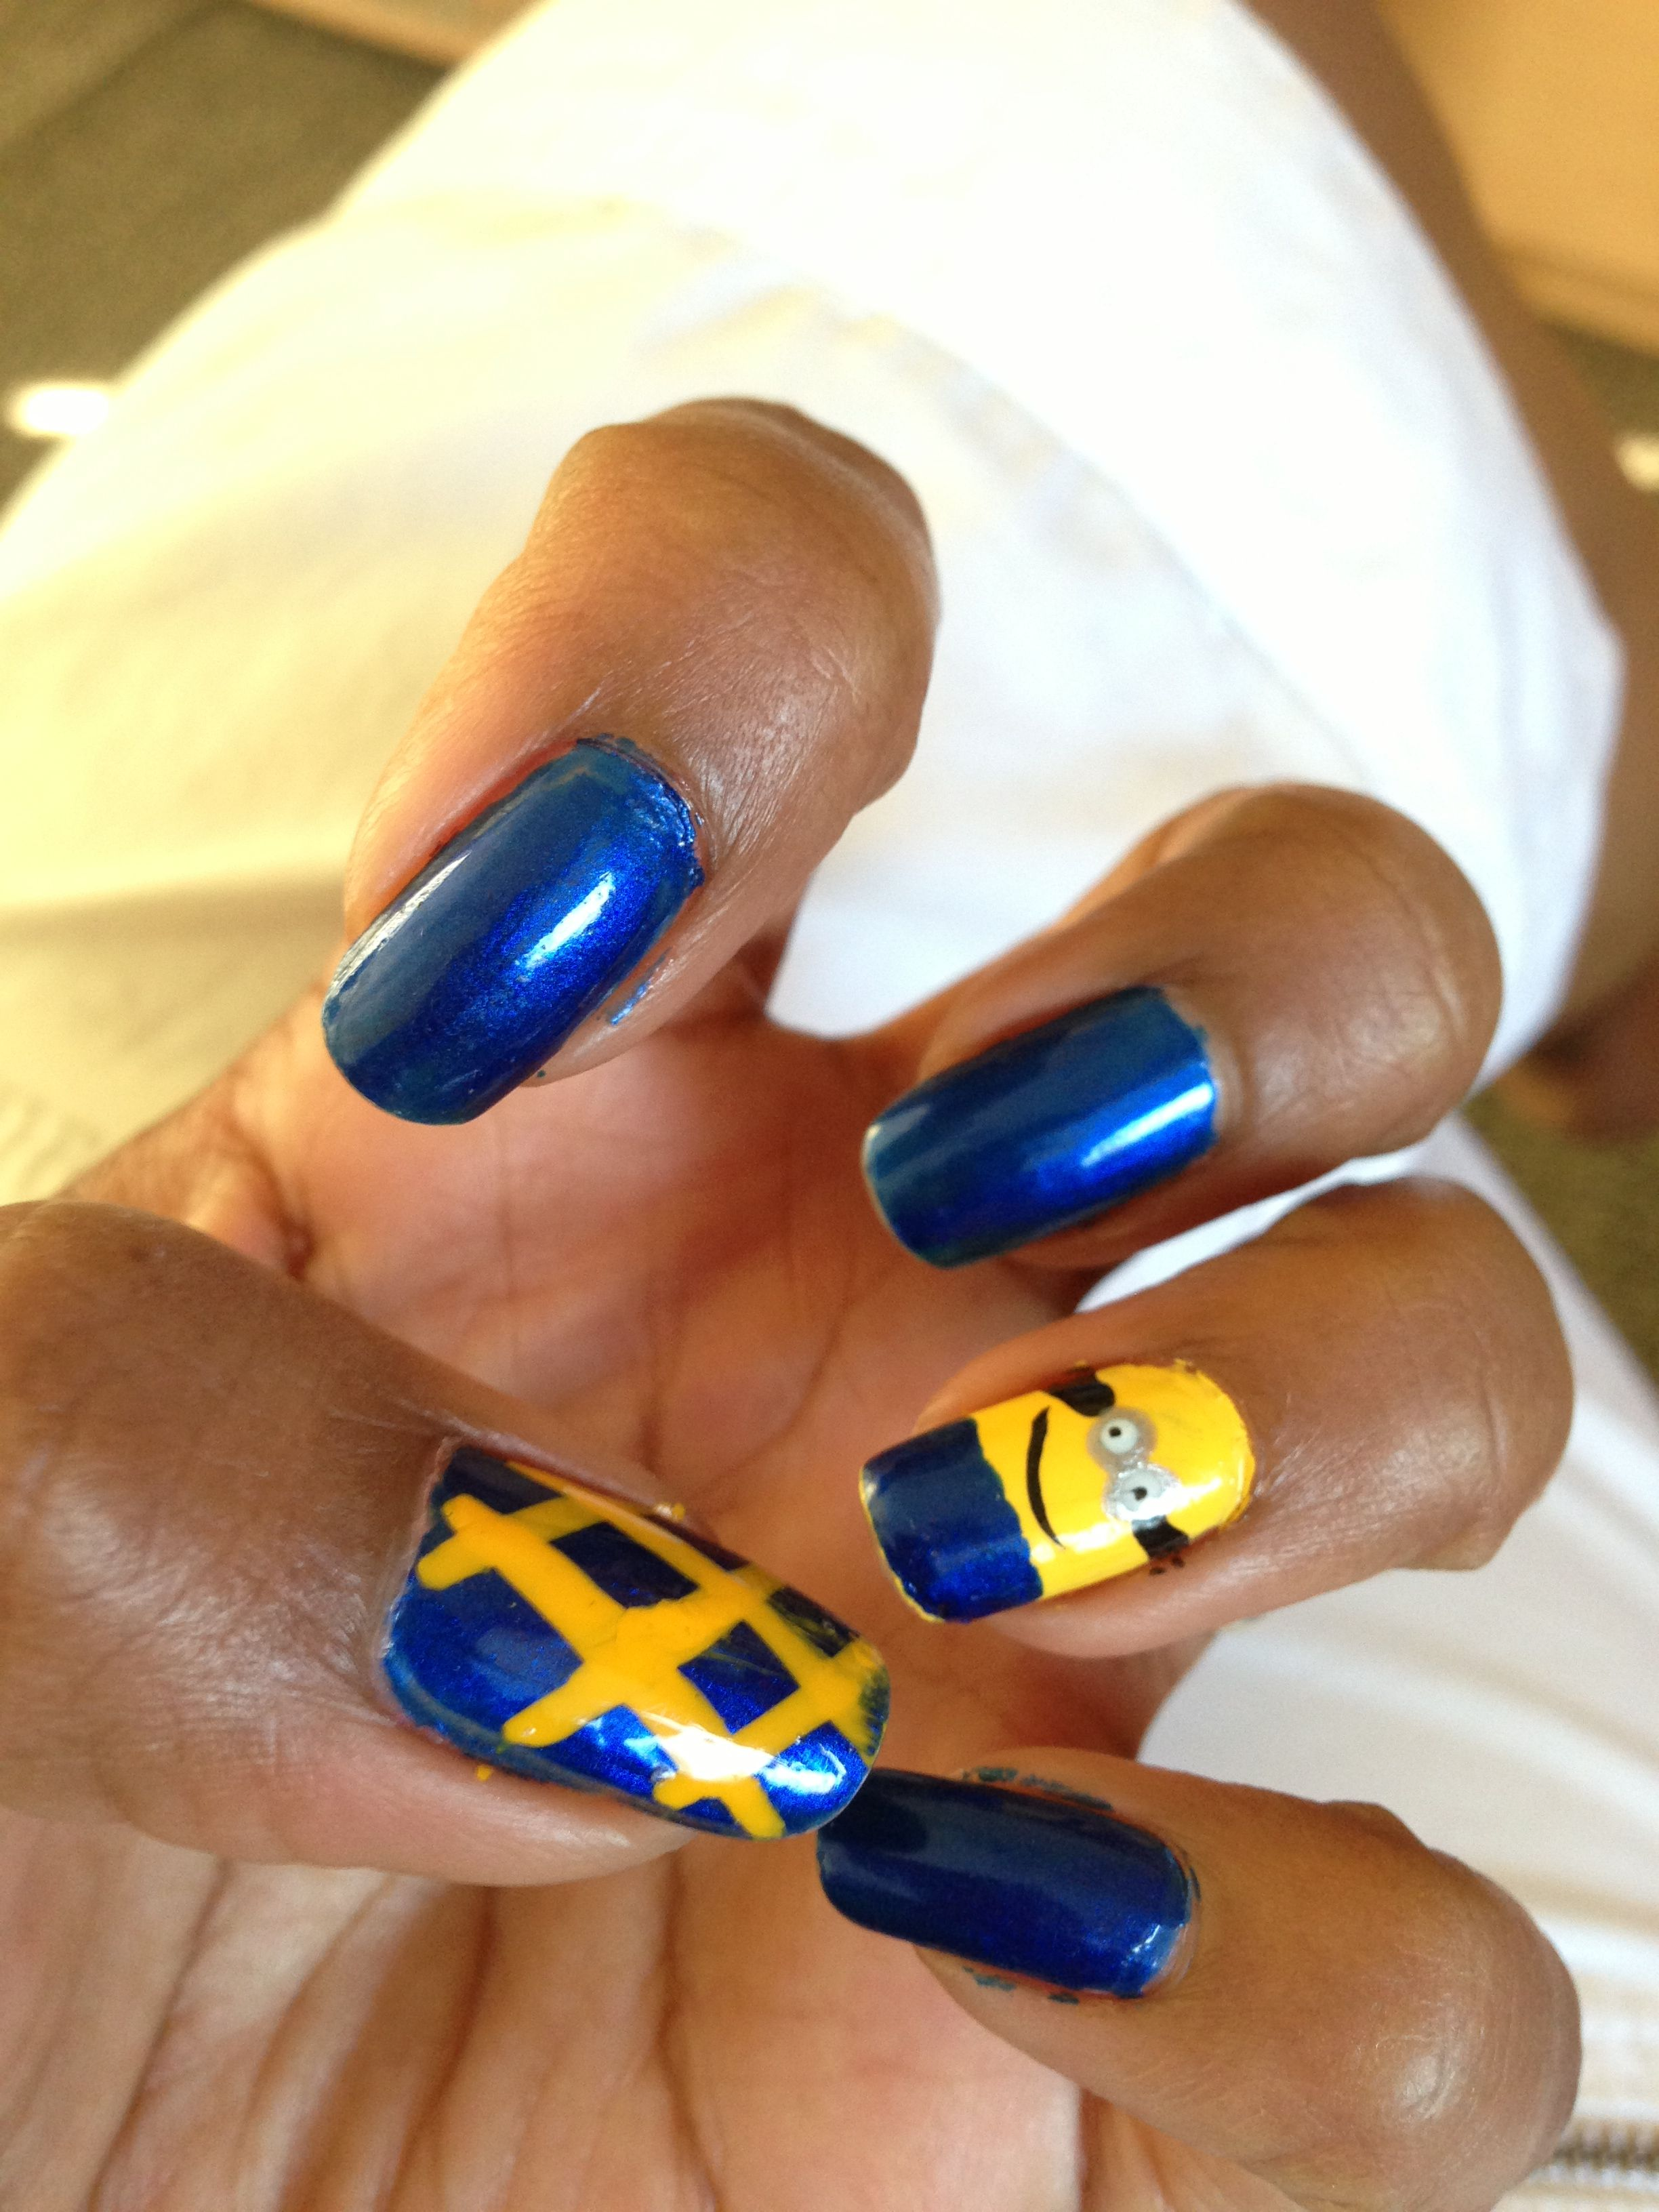 Despicable me nails | Mine creations | Pinterest